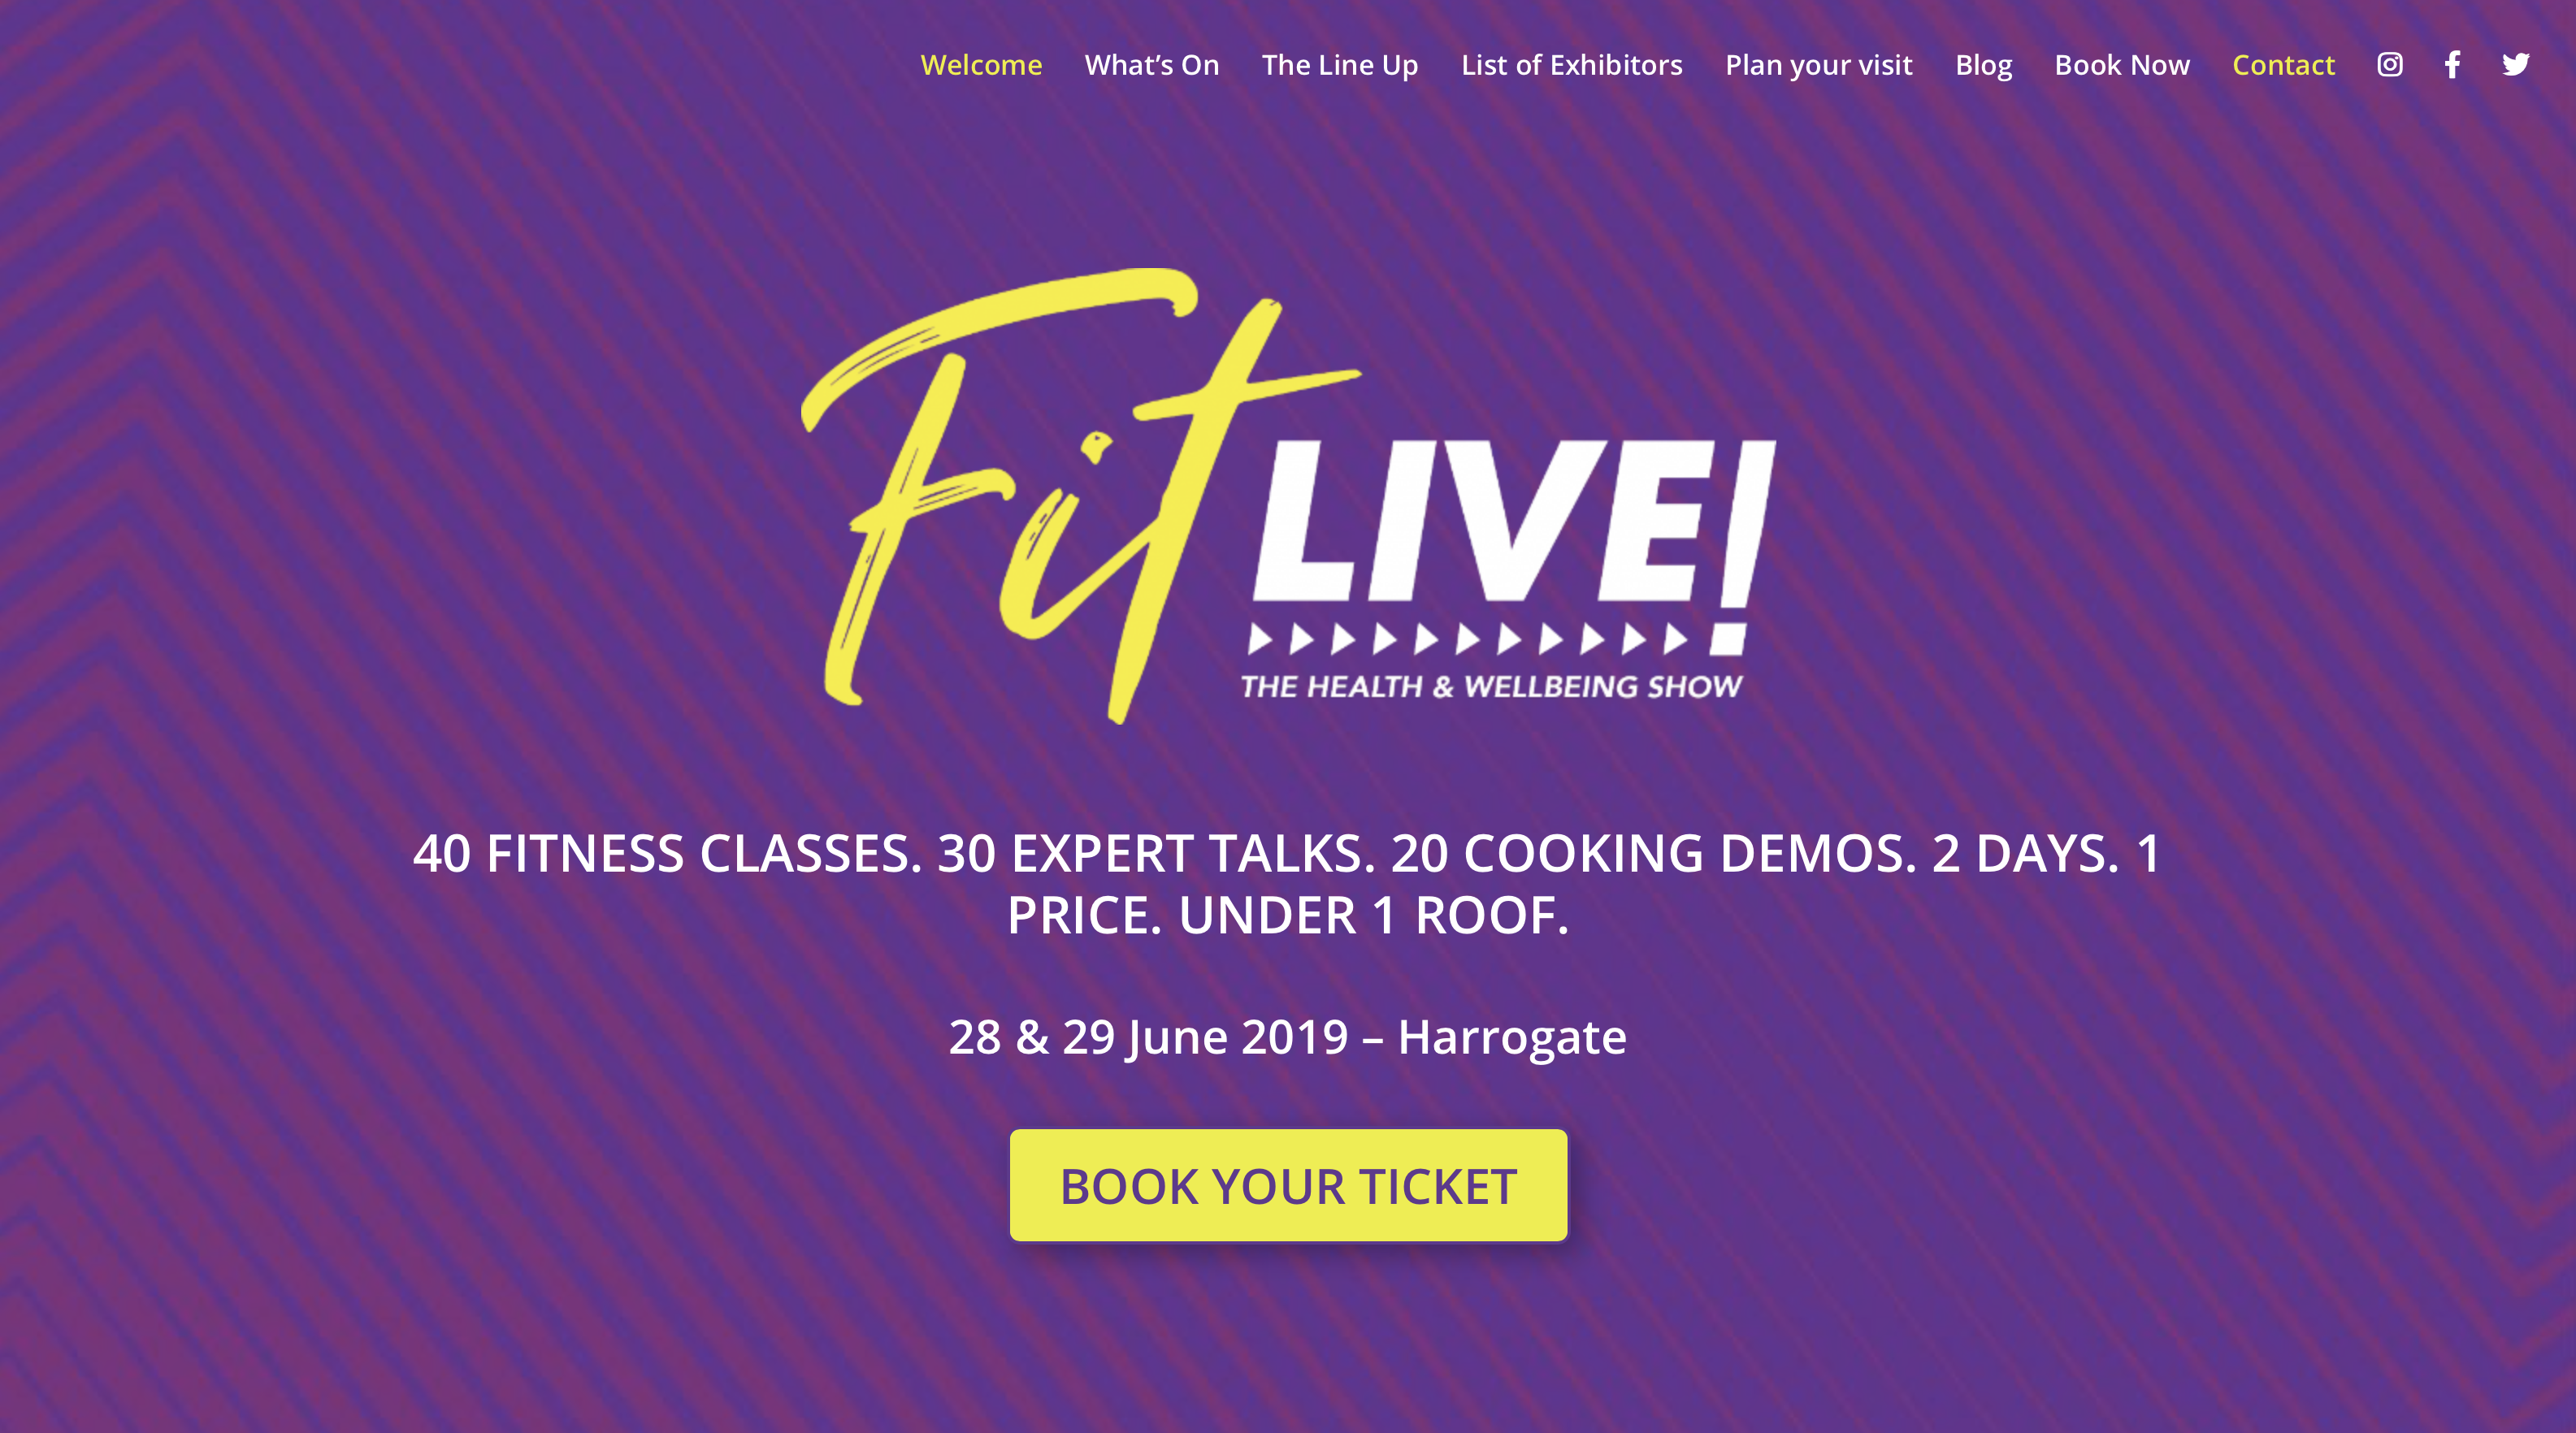 FitLive! Show